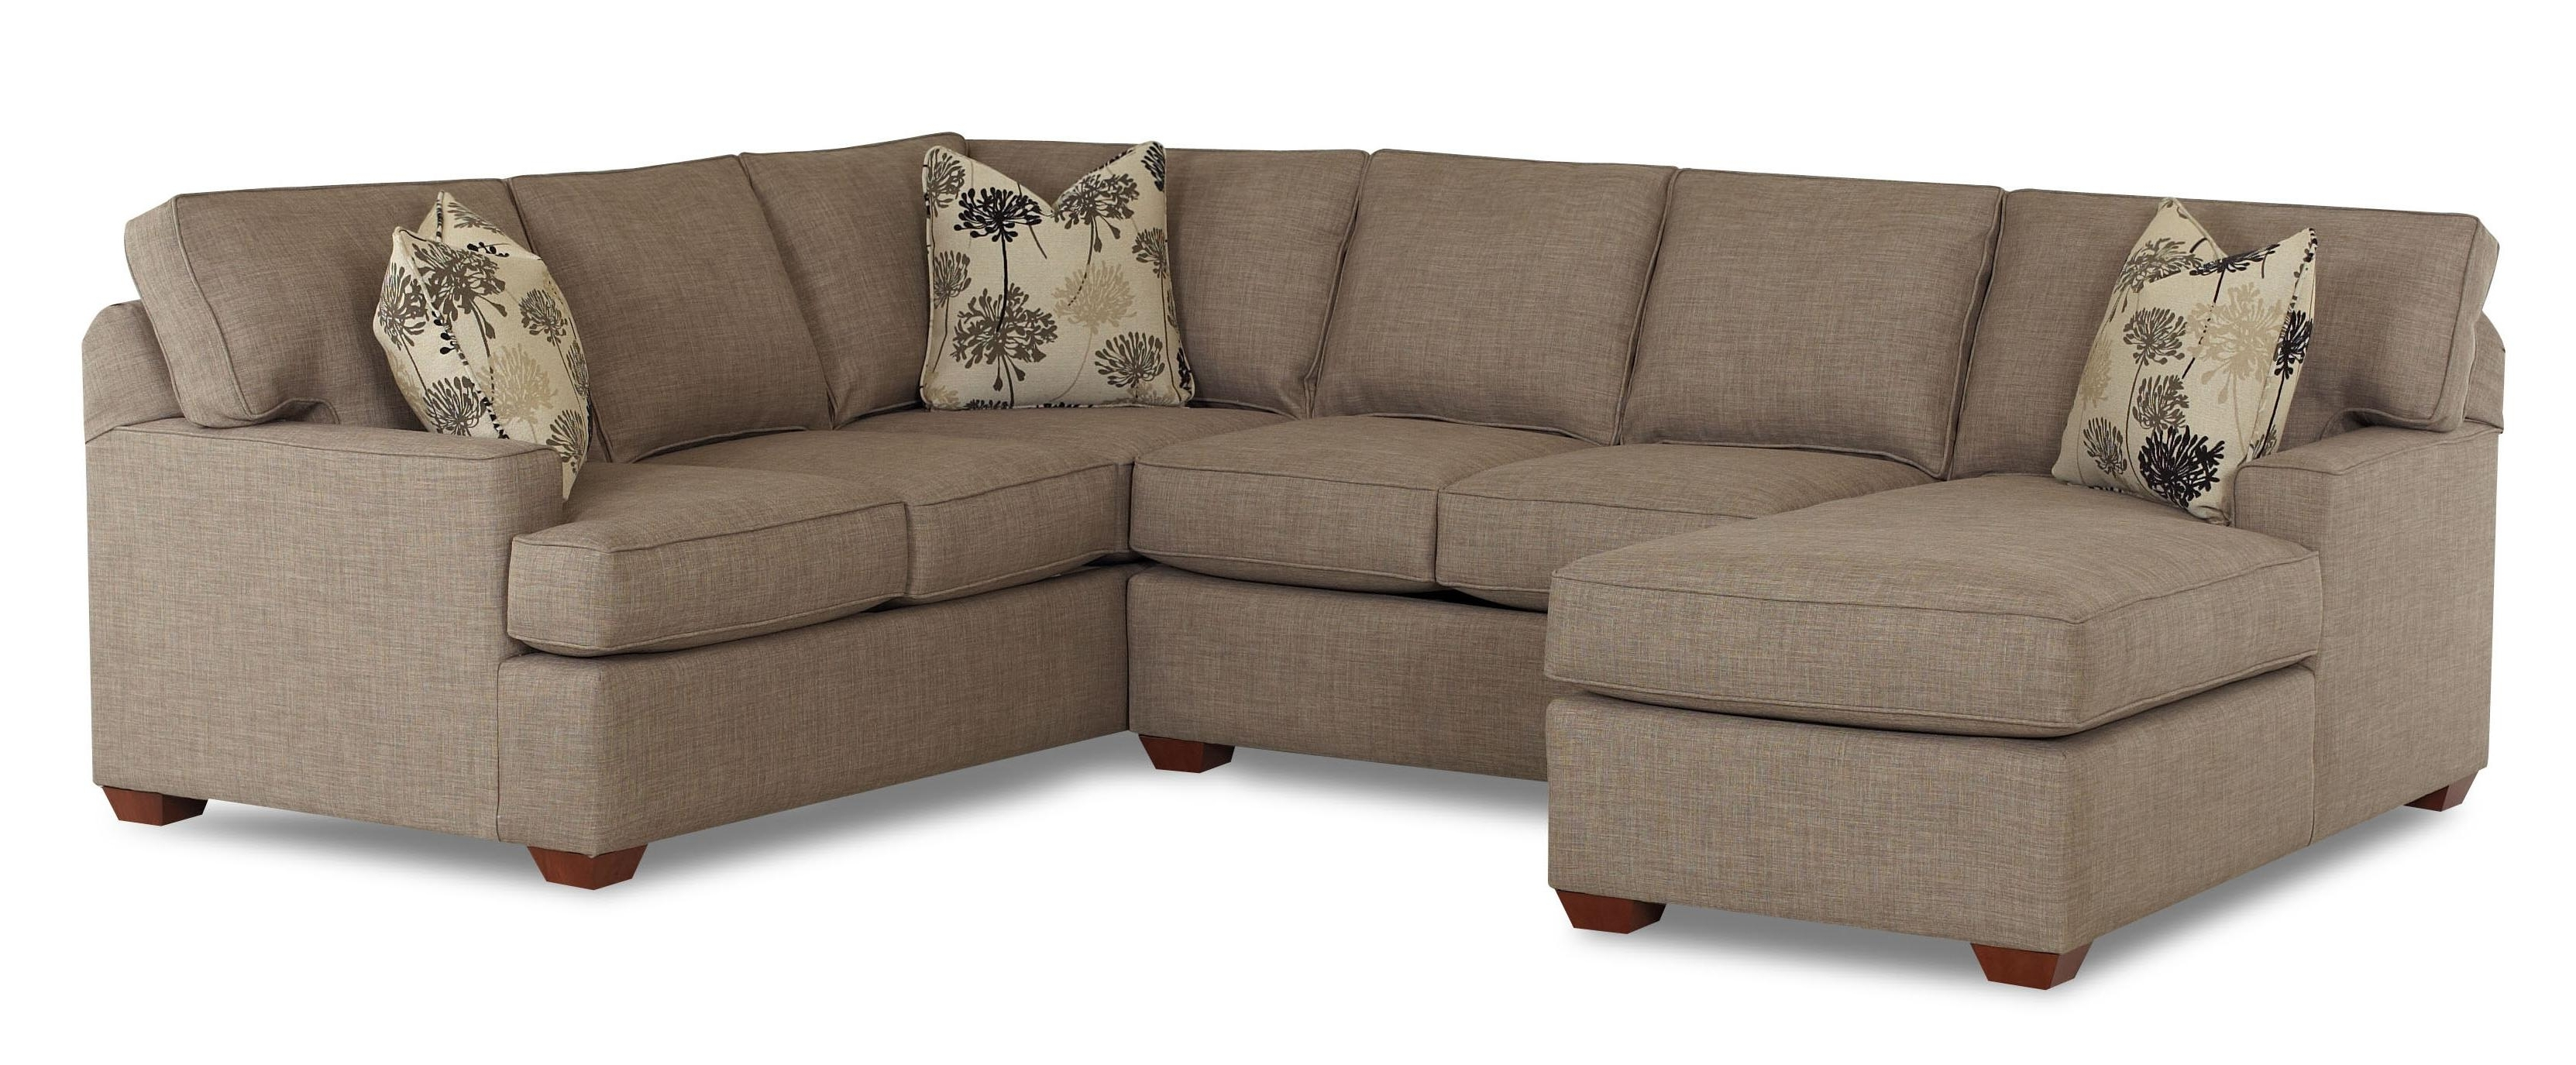 Featured Photo of Nova Scotia Sectional Sofas